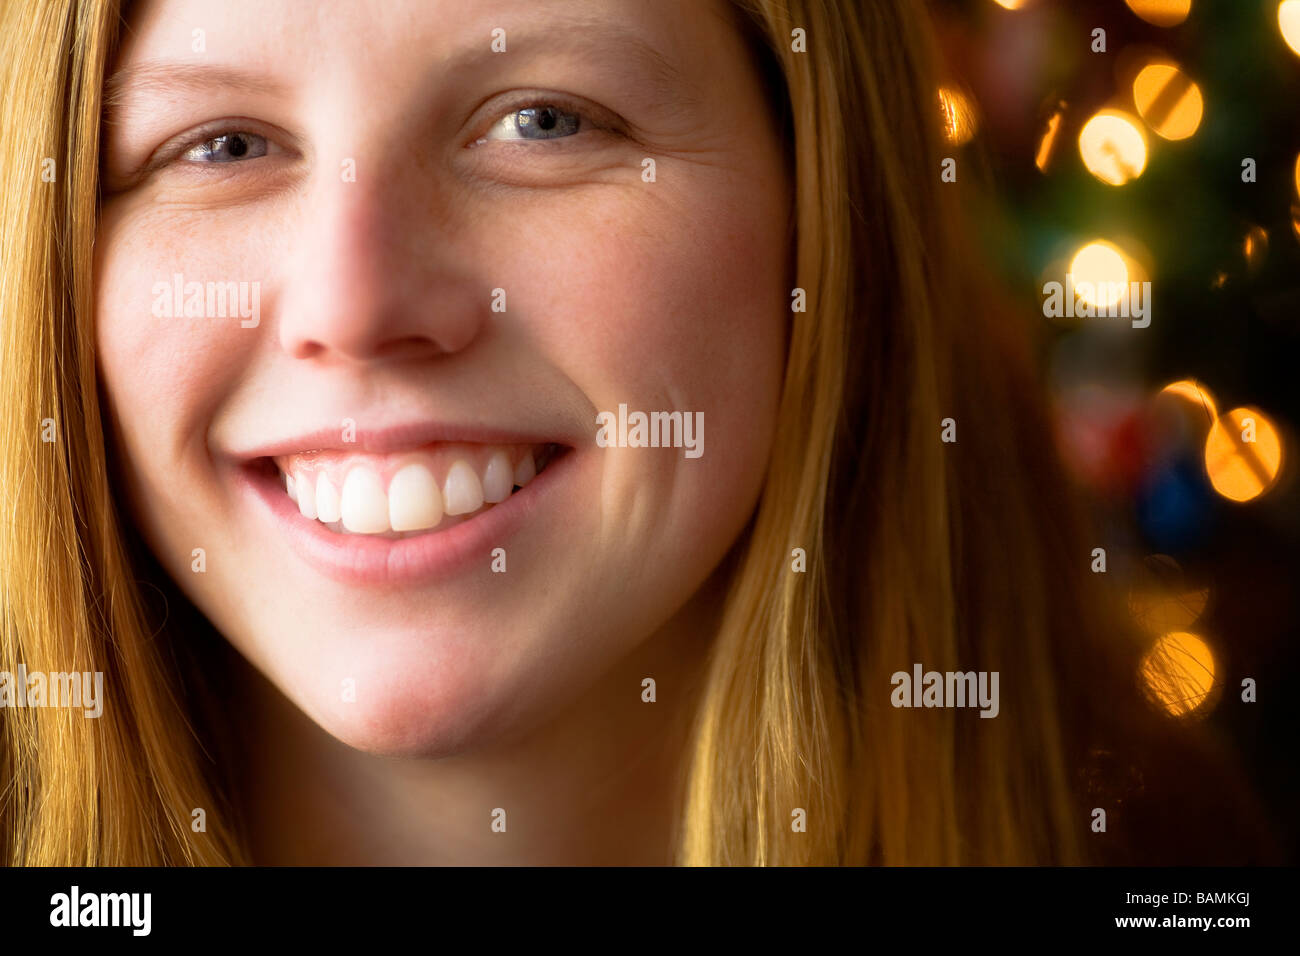 Portrait of woman with lights in background - Stock Image